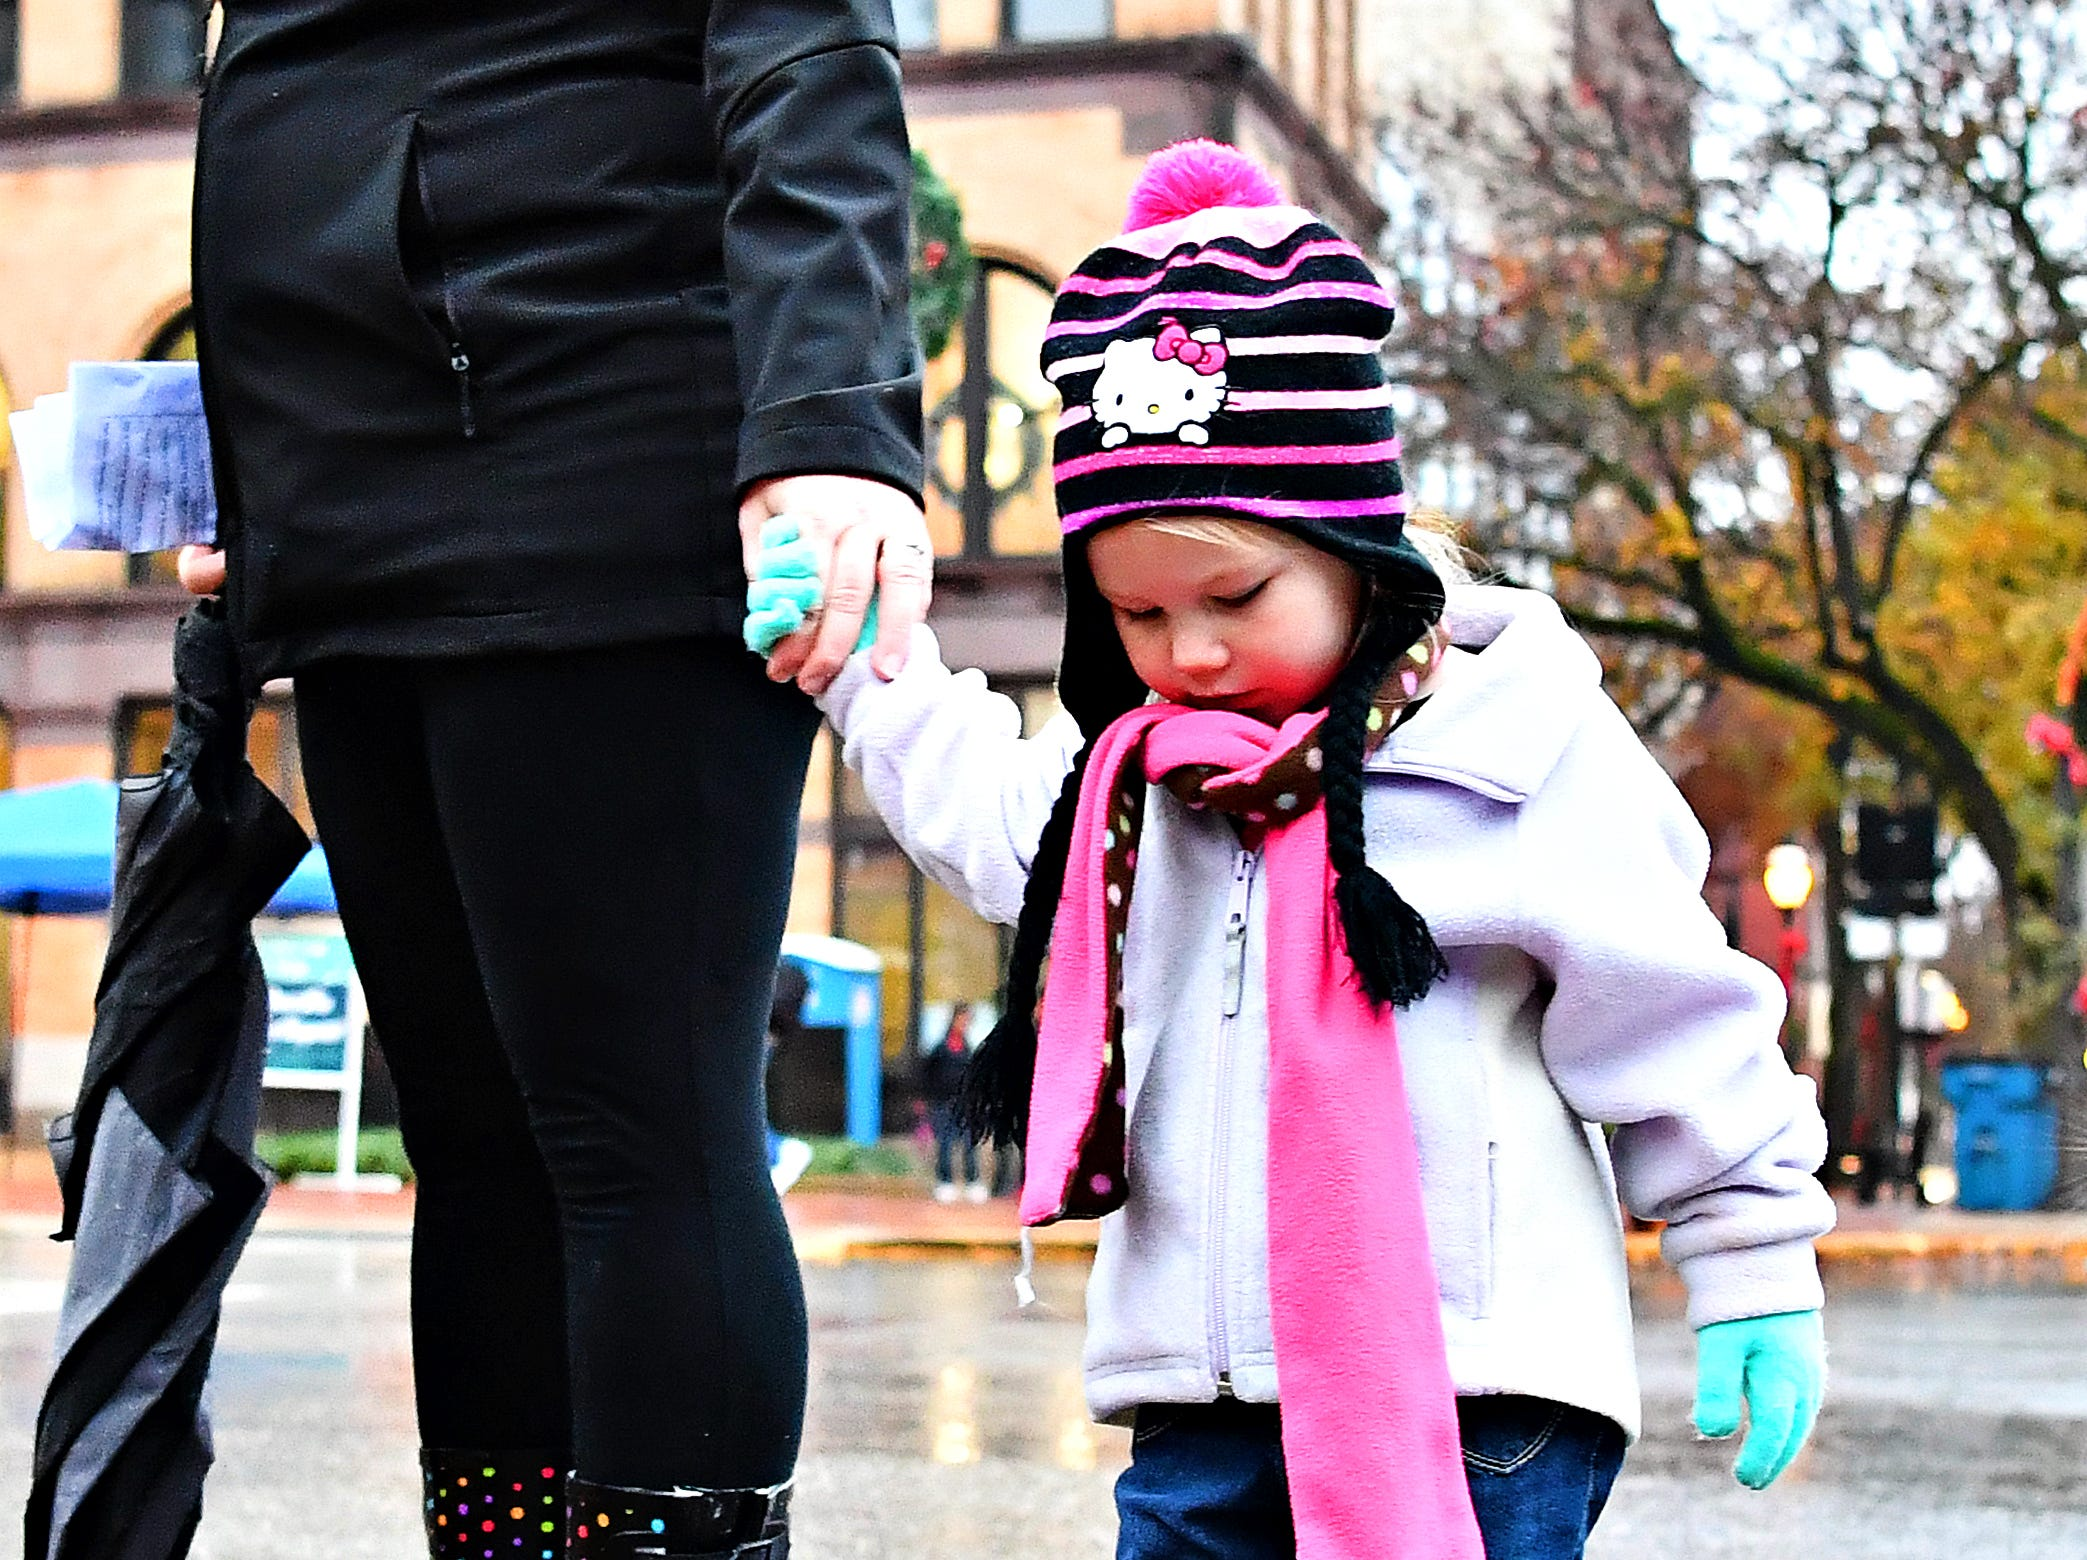 A child finds a puddle during Light Up York in York City, Saturday, Dec. 1, 2018. Dawn J. Sagert photo